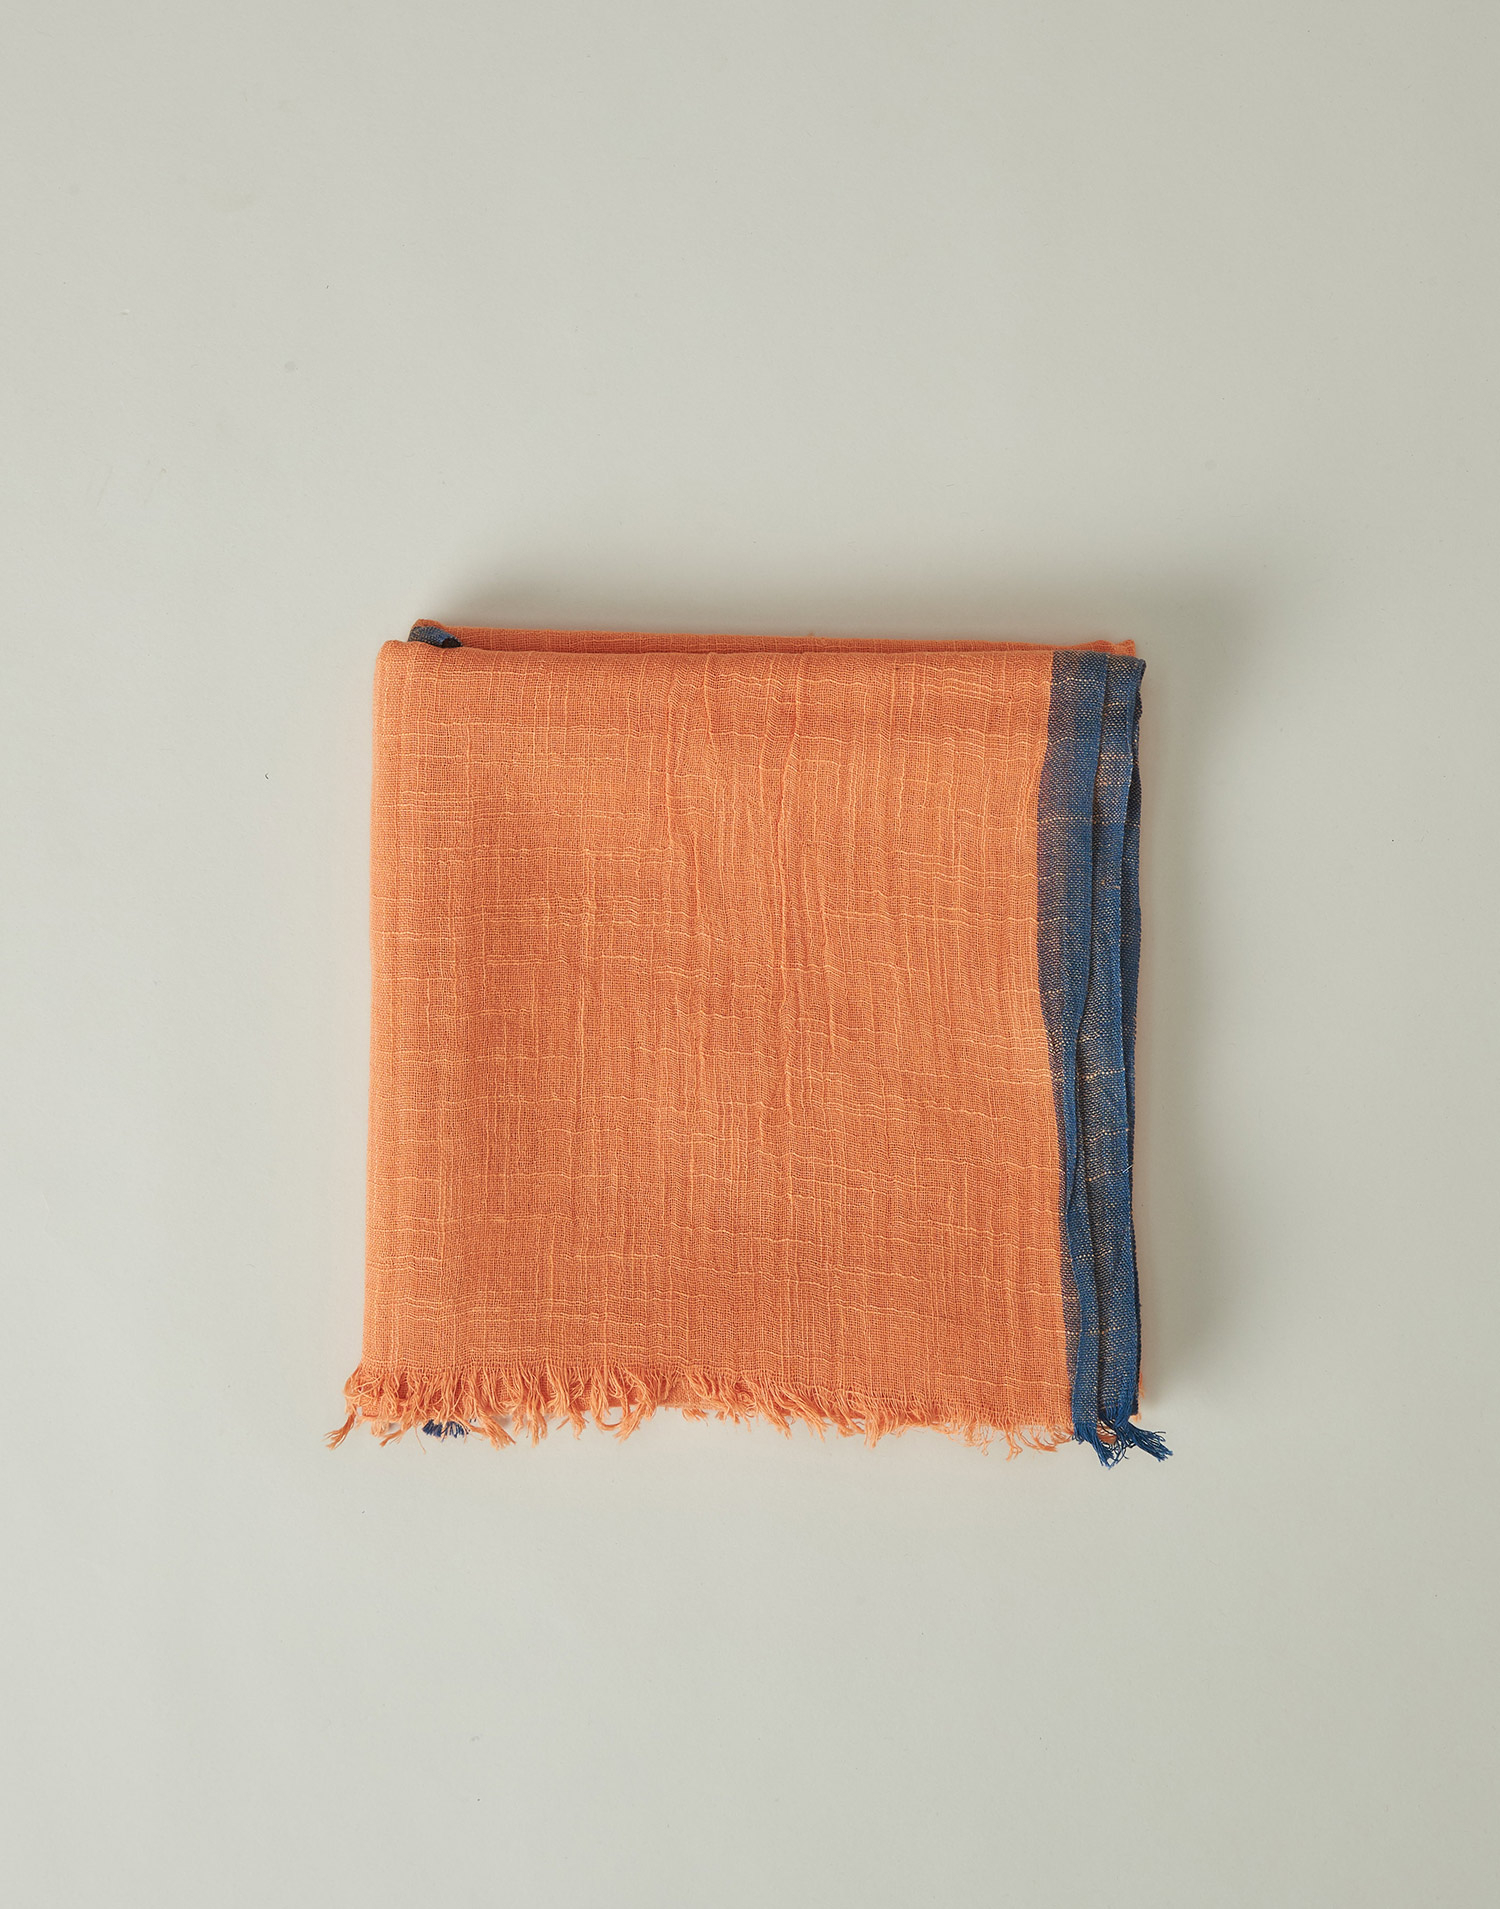 Rustic foulard with contrasted edges